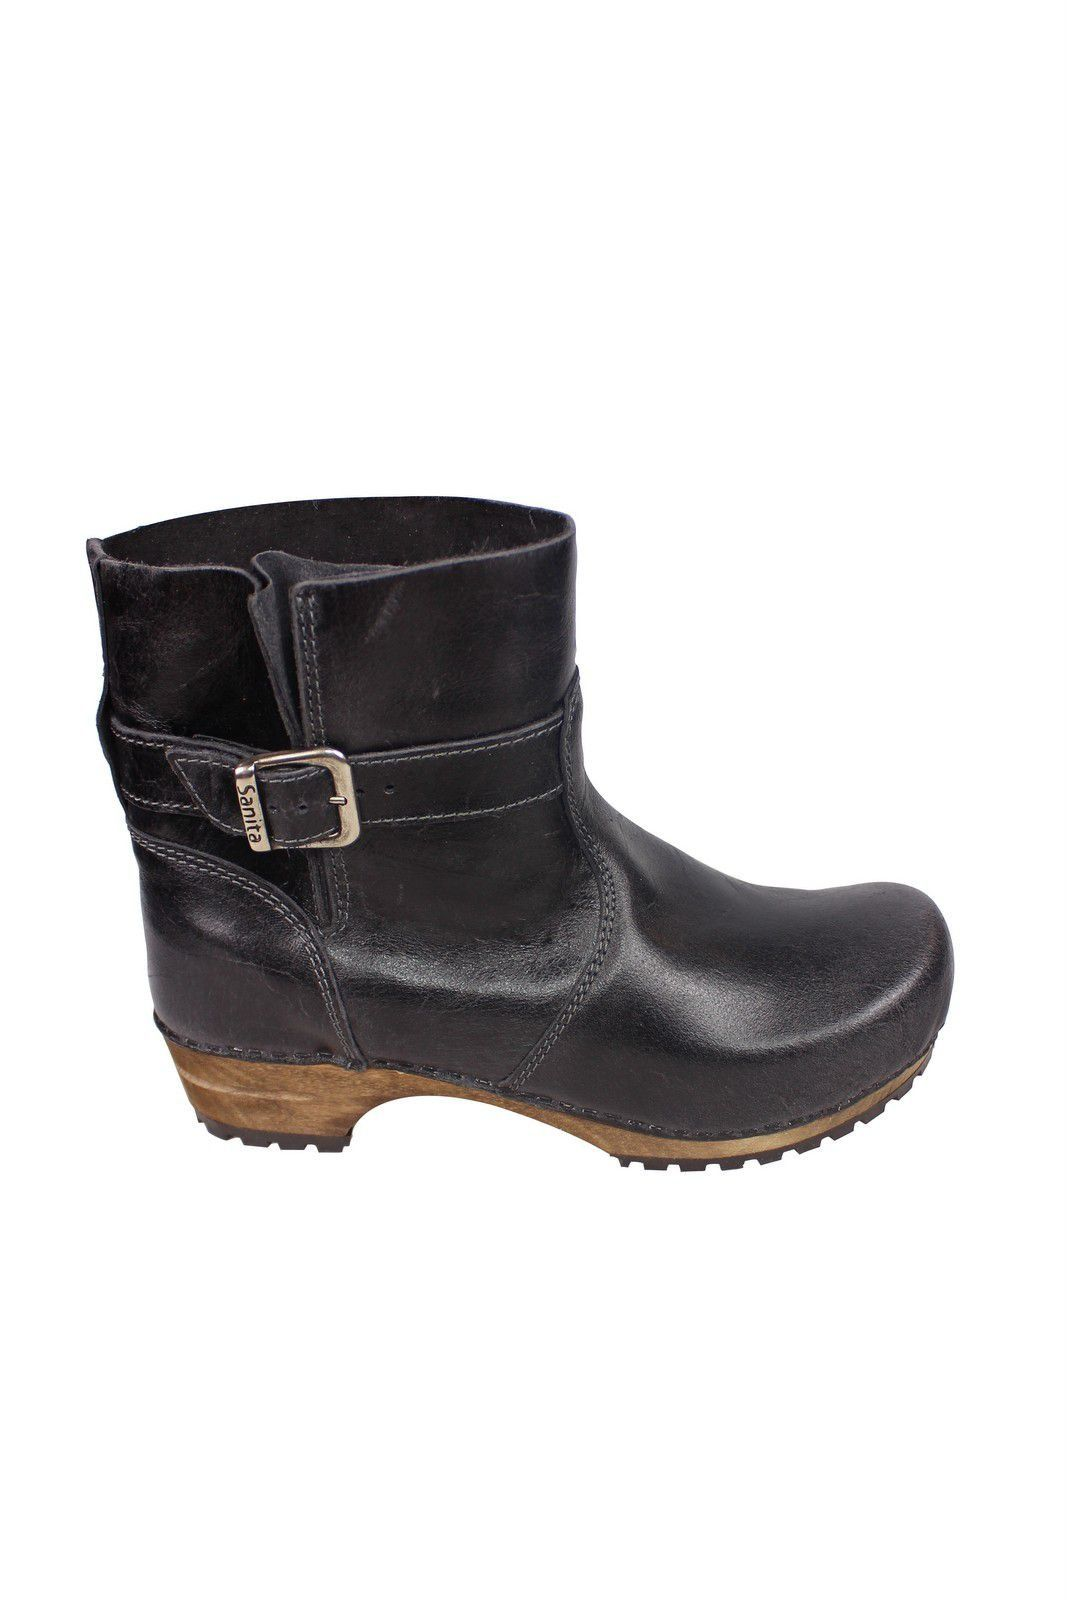 Sanita Mina Low Classic Clog Boot Black 452330 Side 2